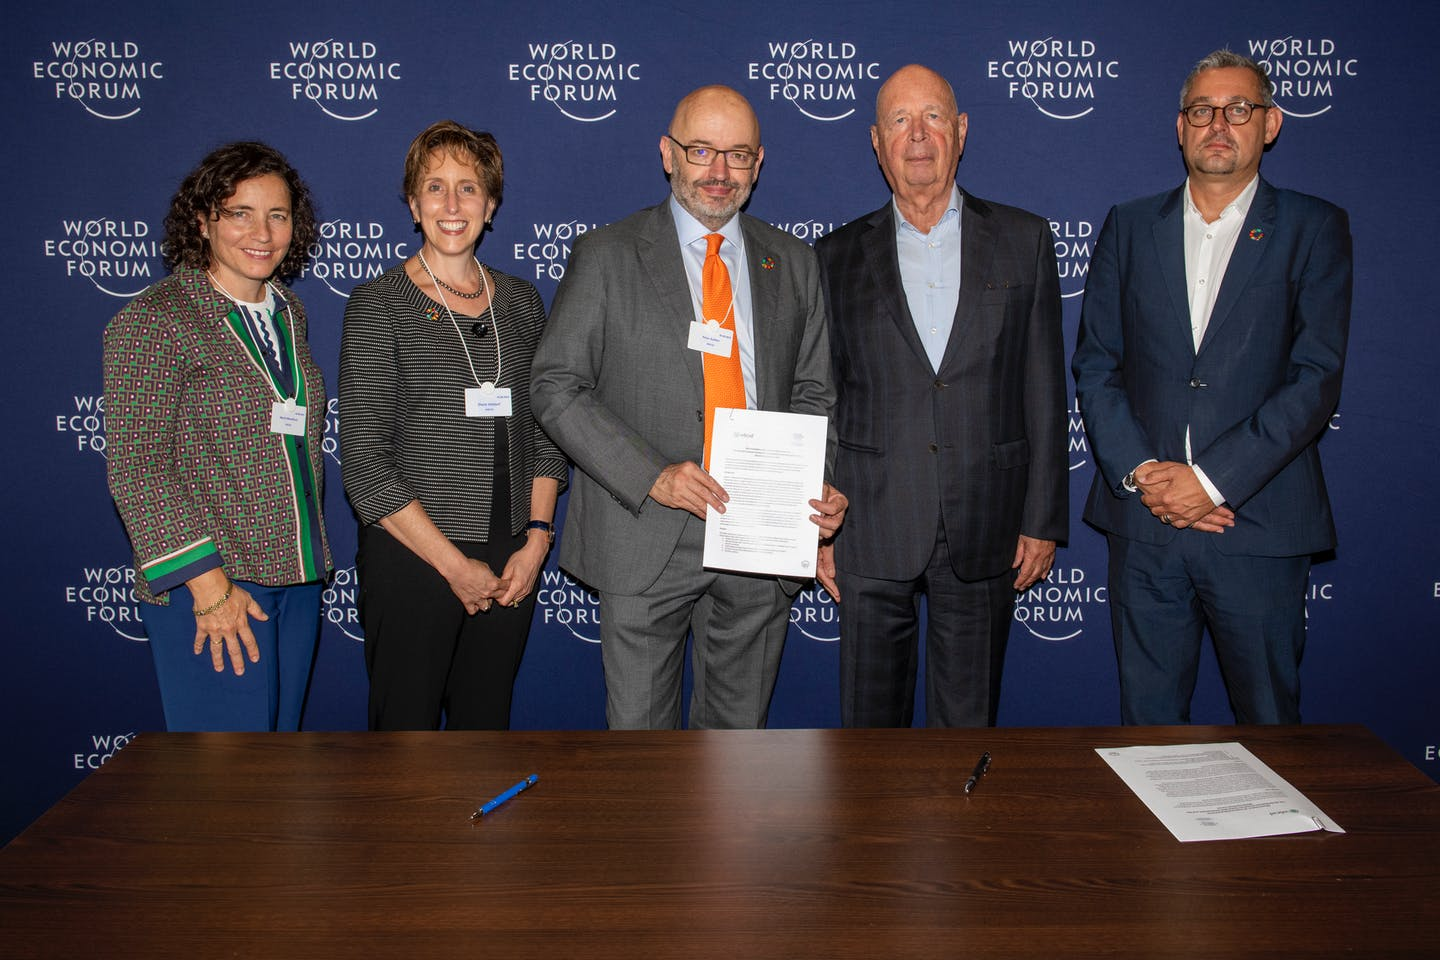 WBCSD and WEF to scale up impact on pressing sustainable development issues